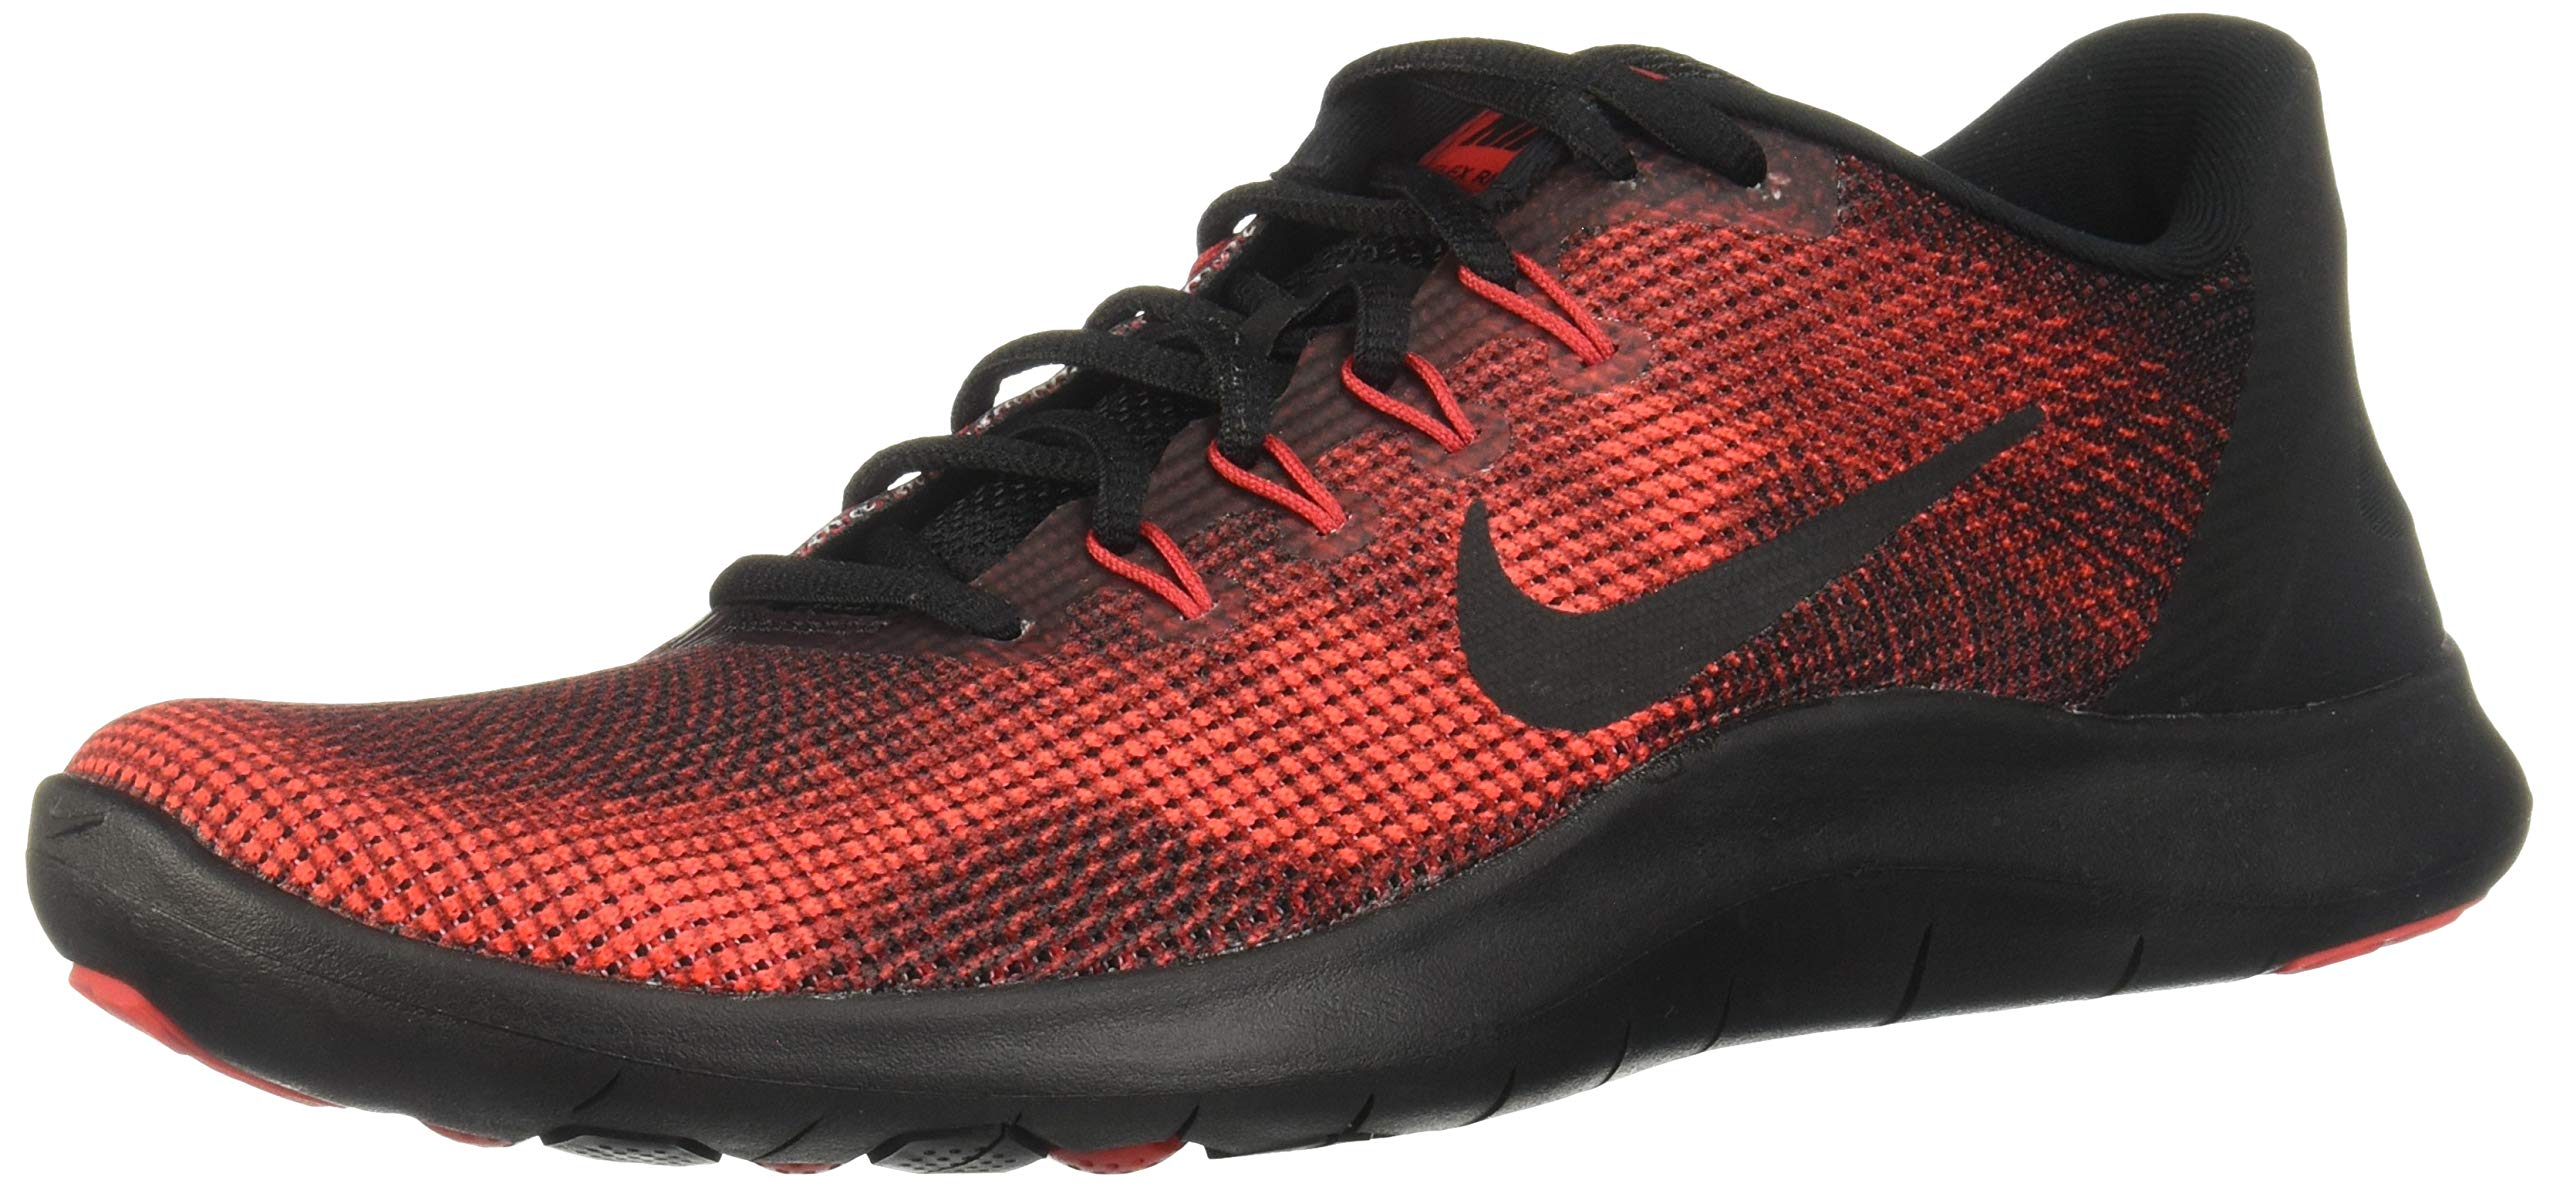 Nike Boy's Flex RN 2018 Running Shoe Black/University Red/Team Red Size 2 M US